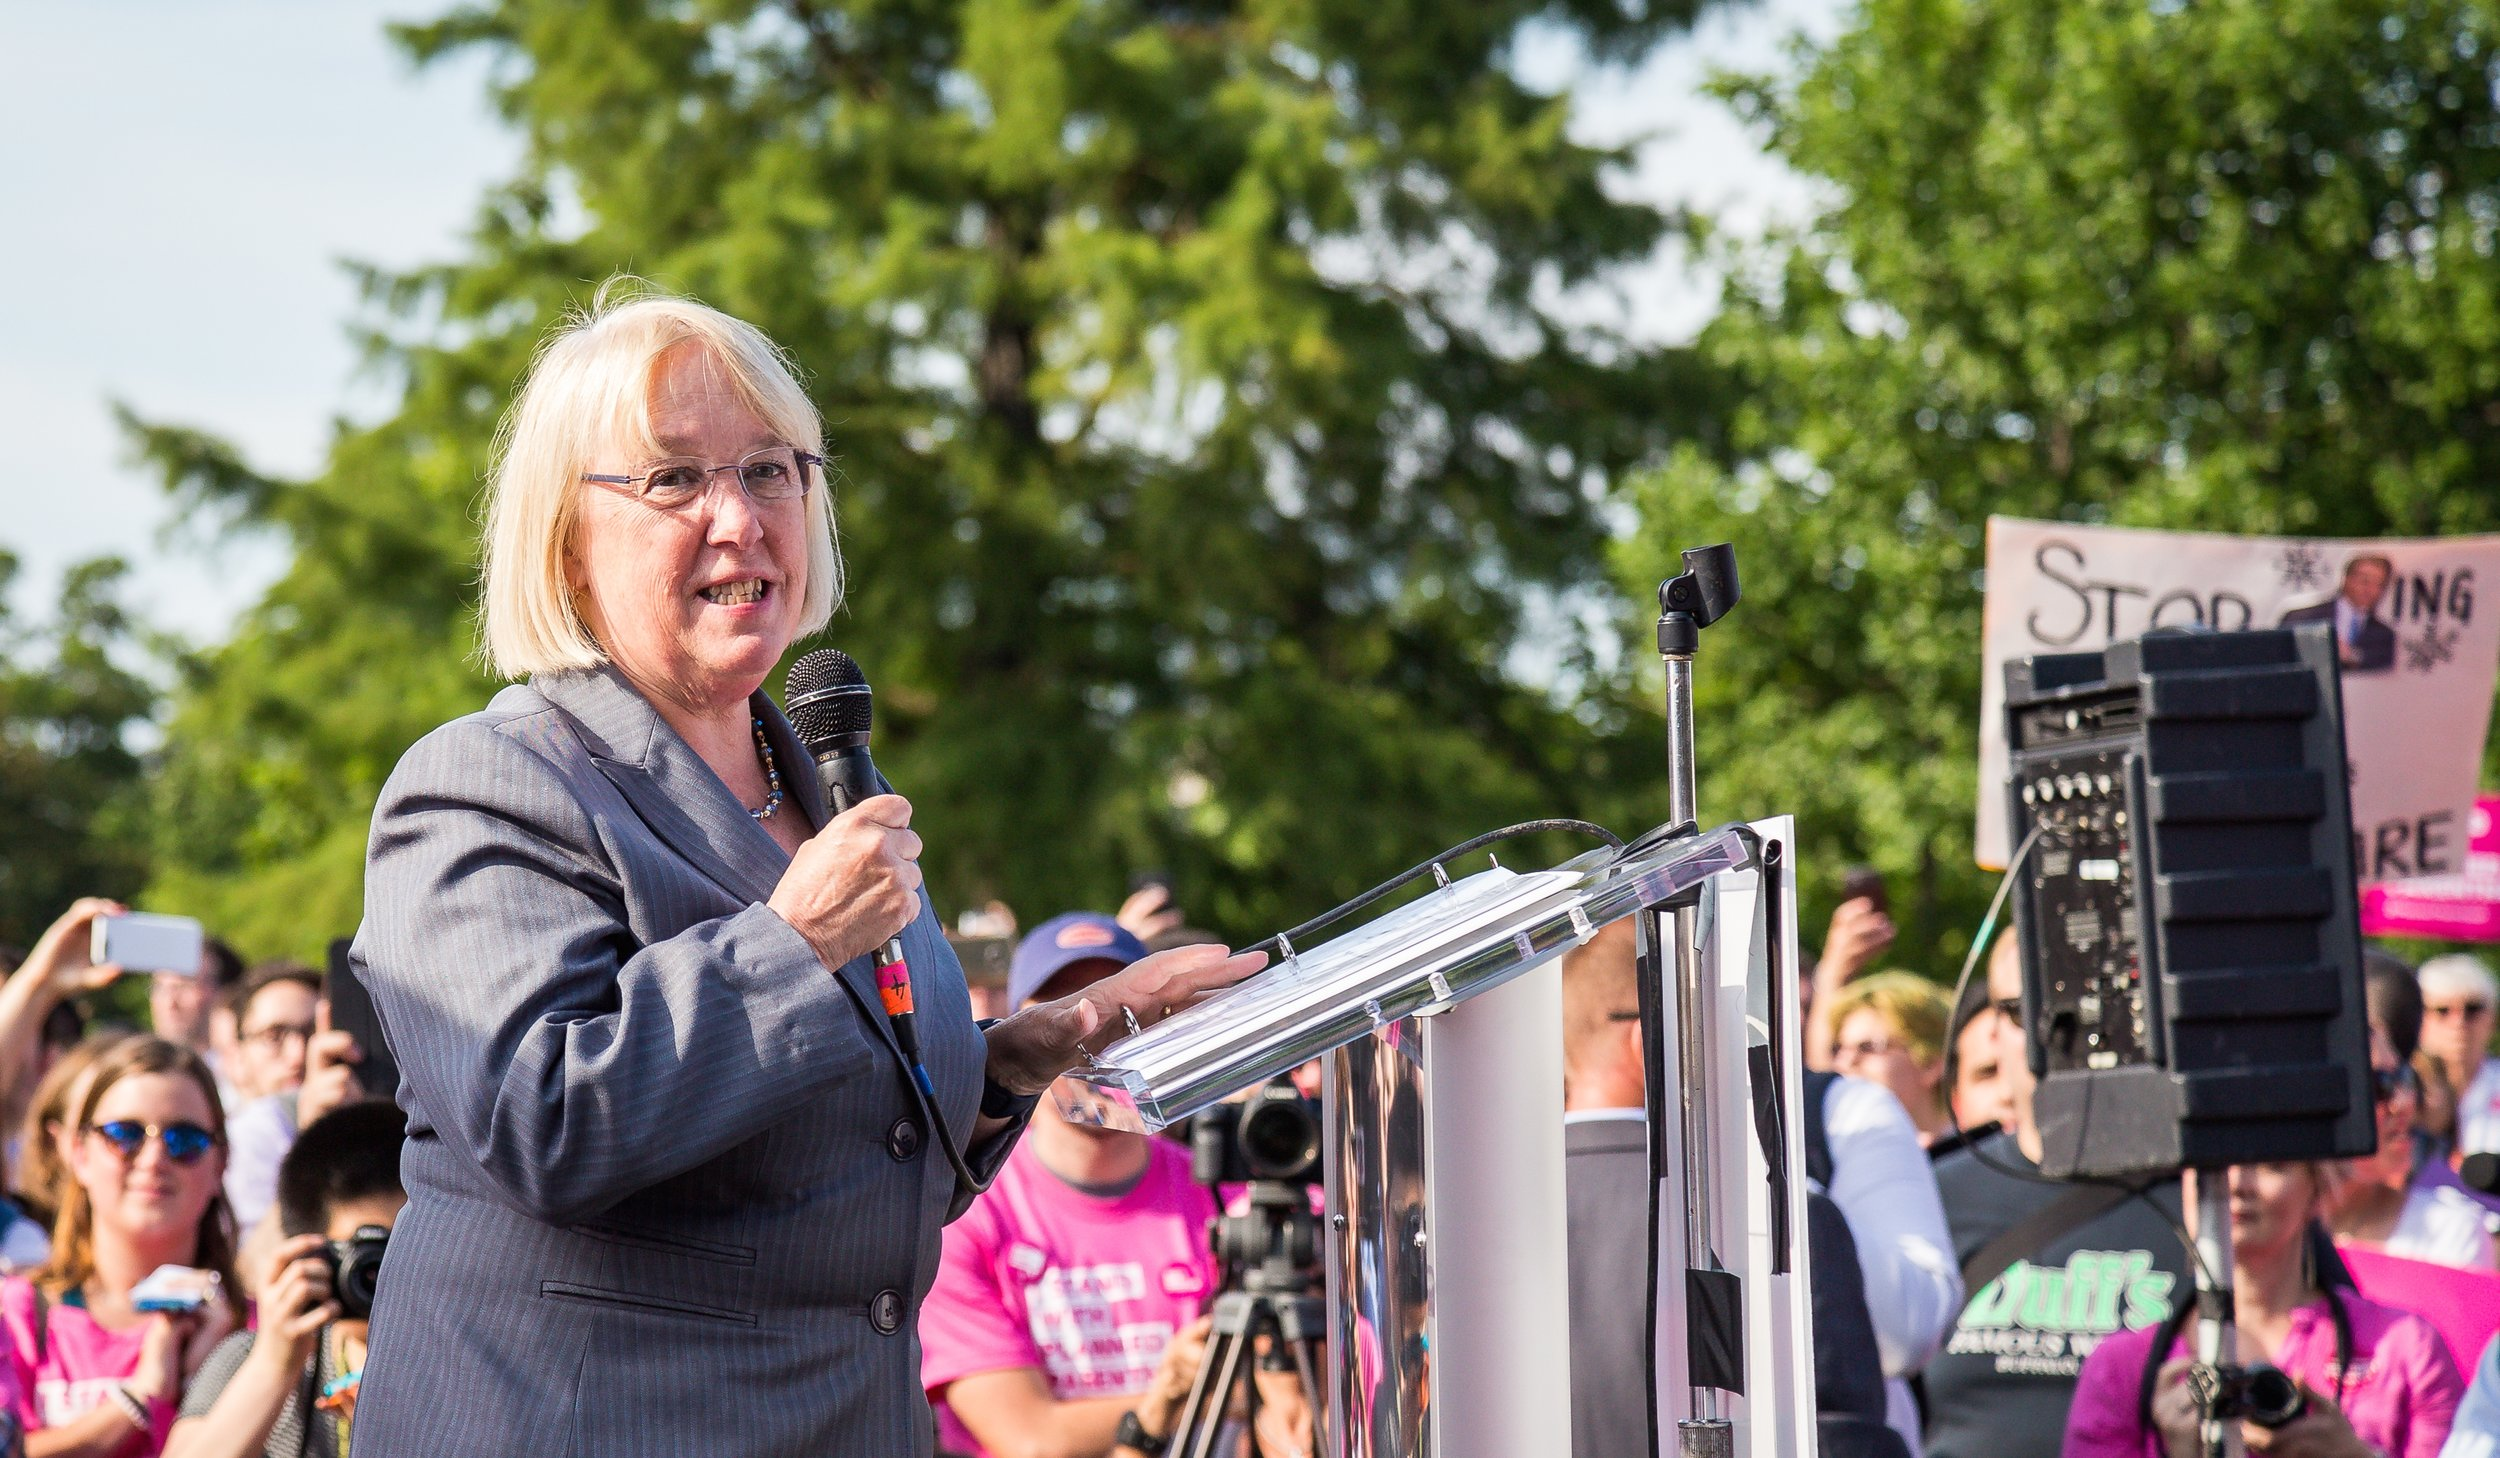 """U.S. Sen. Patty Murray (D-Wash.) speaks at a rally outside the U.S. Capitol on June 28, 2017. A senior policy adviser for Murray allegedly said,""""We don't care about anti-Semitism in this office,"""" JNS reports. Credit:Mobilus In Mobili via Wikimedia Commons."""